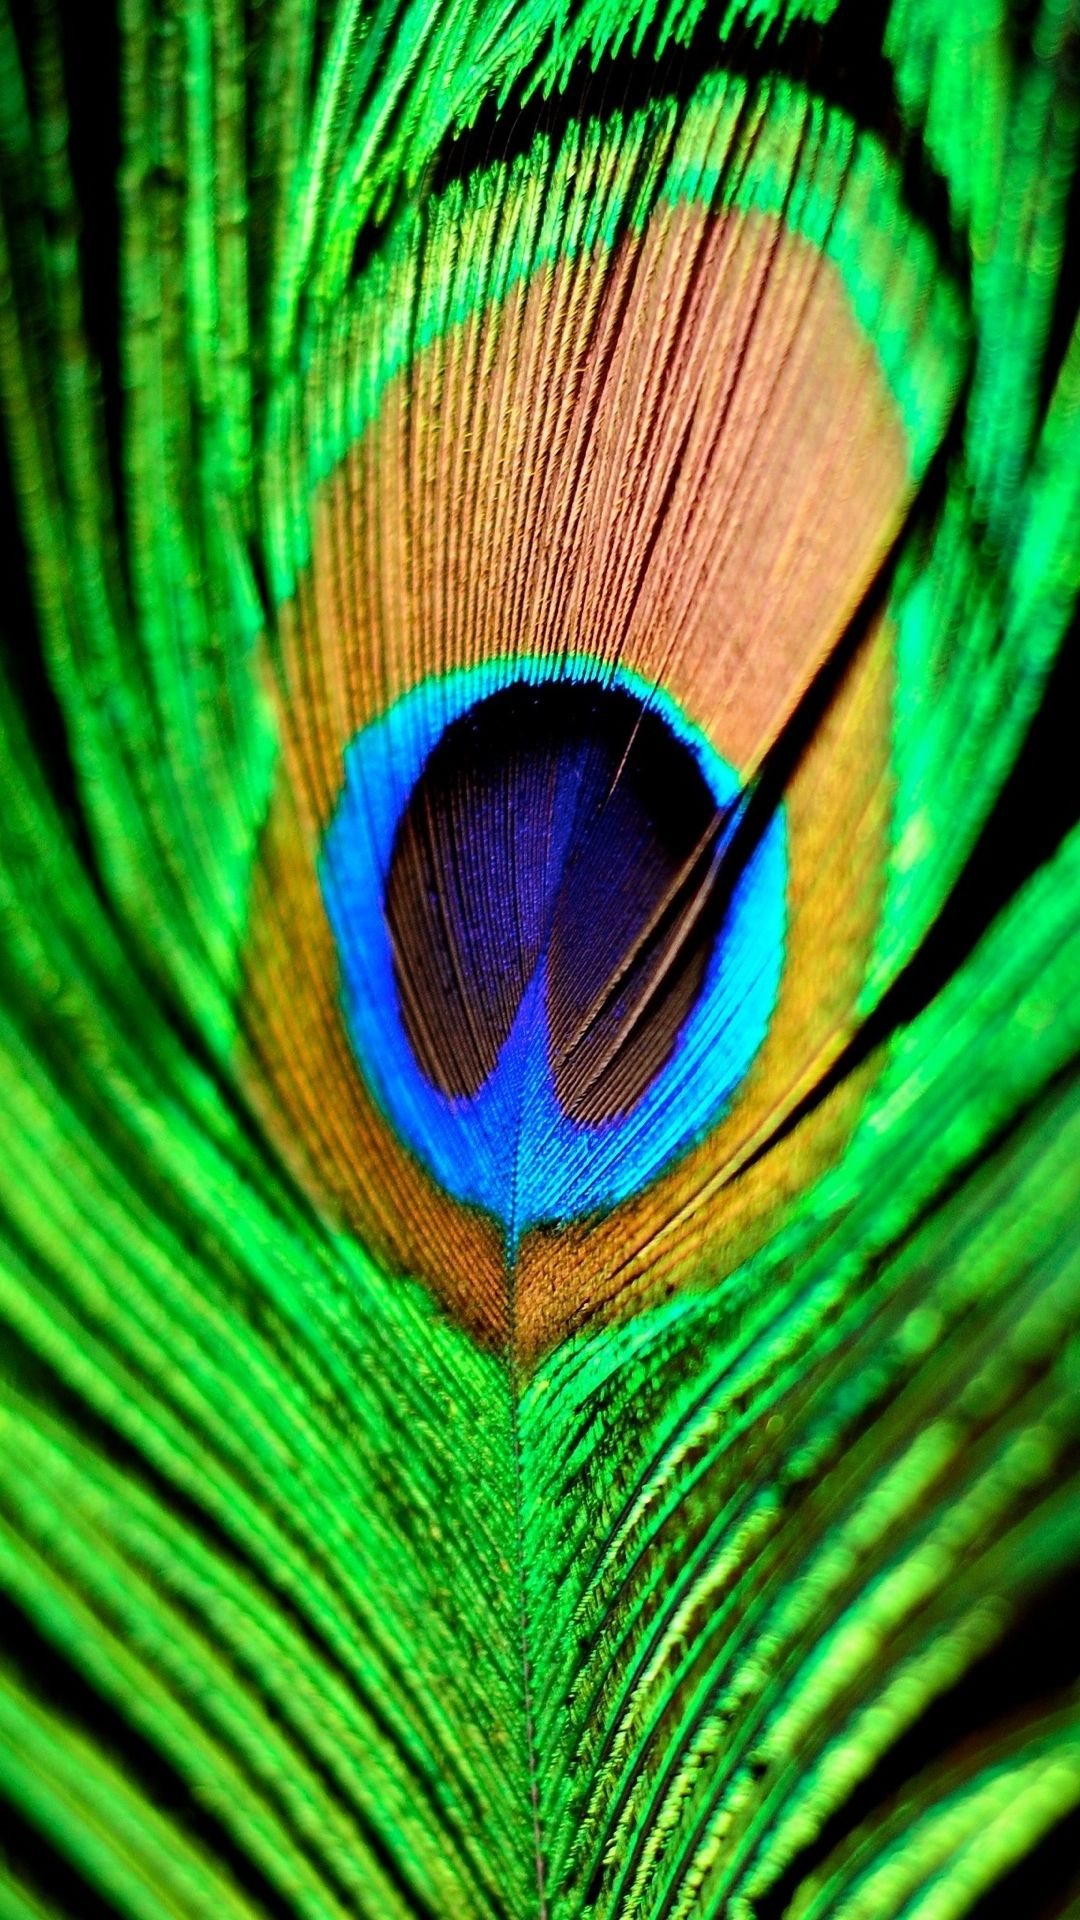 Hd wallpaper mobile phone - Peacock Feather Green Blue Iphone 6 Plus Hd Wallpaper